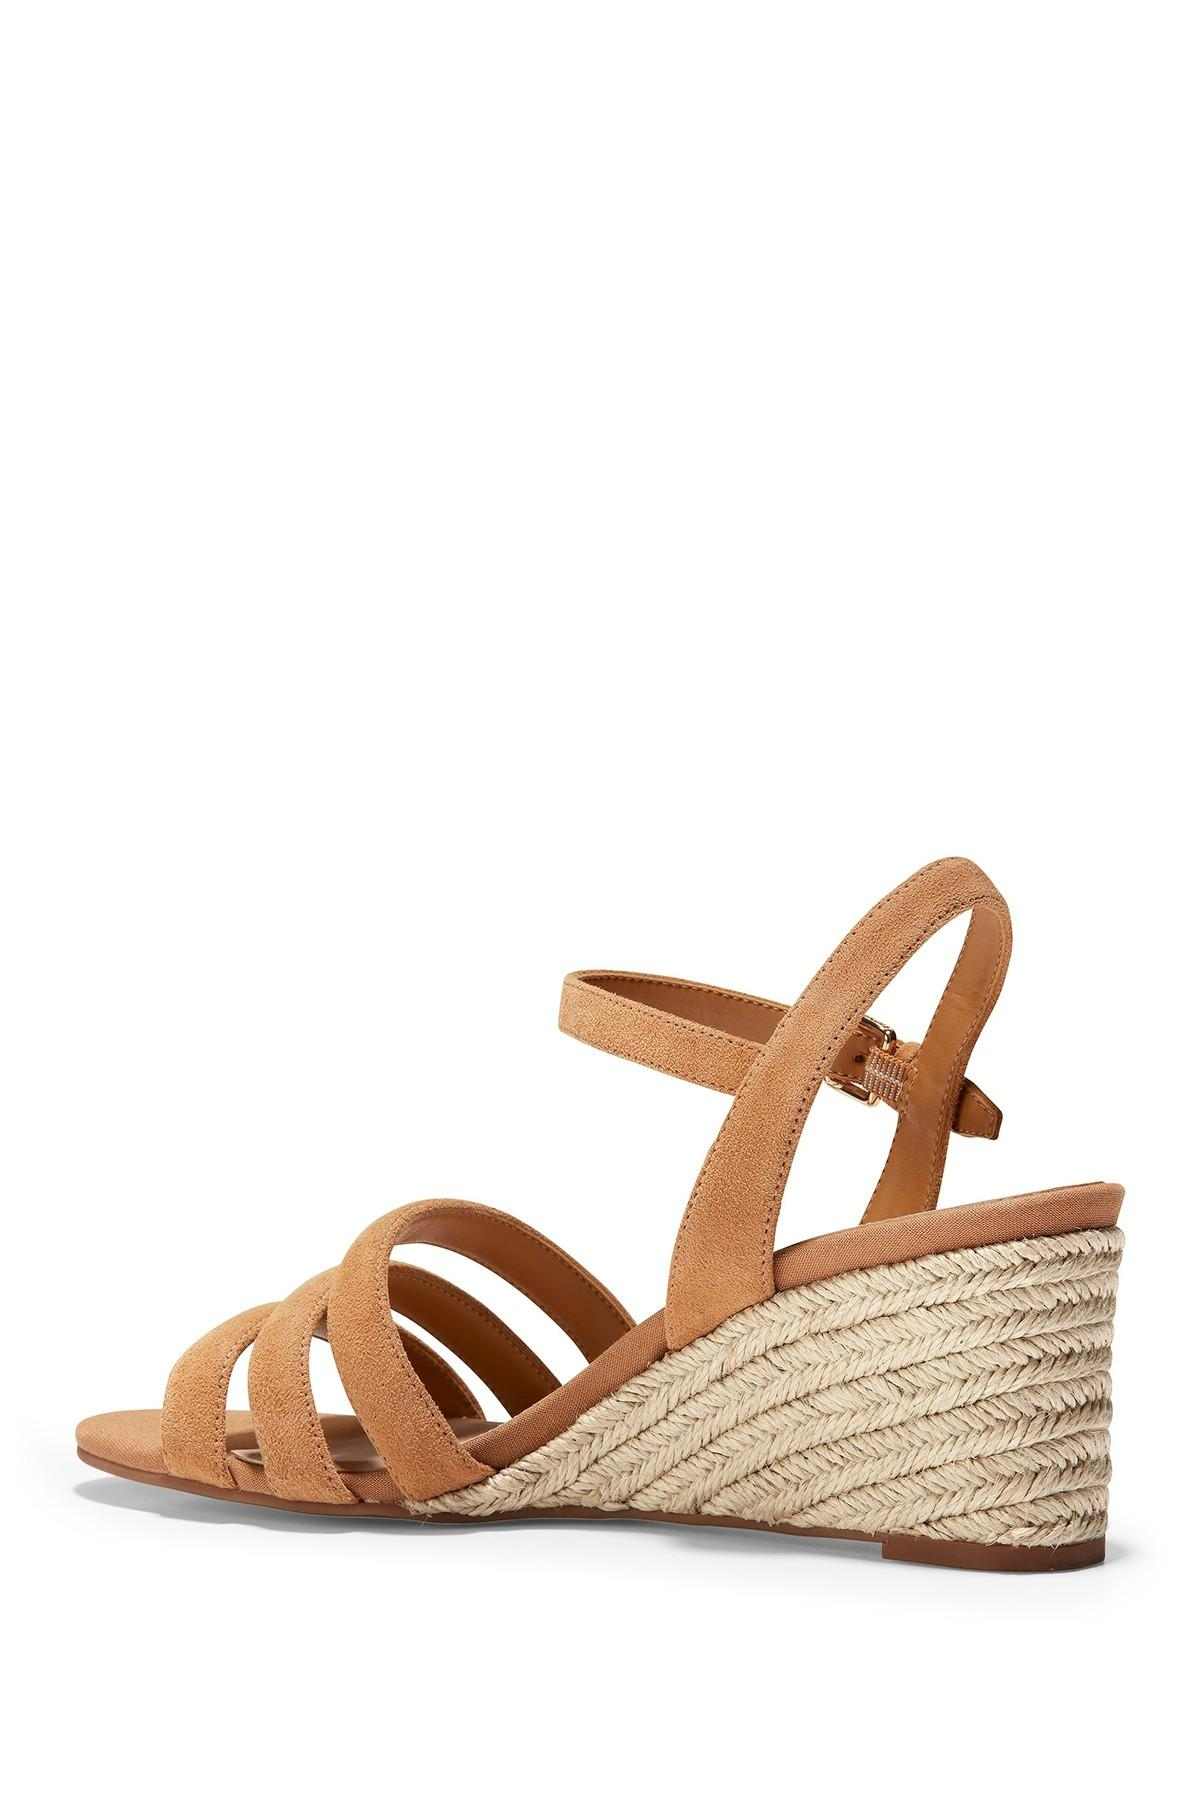 e1ba6a30dc9 Cole Haan - Multicolor Jasmine Espadrille Wedge Sandal - Lyst. View  fullscreen